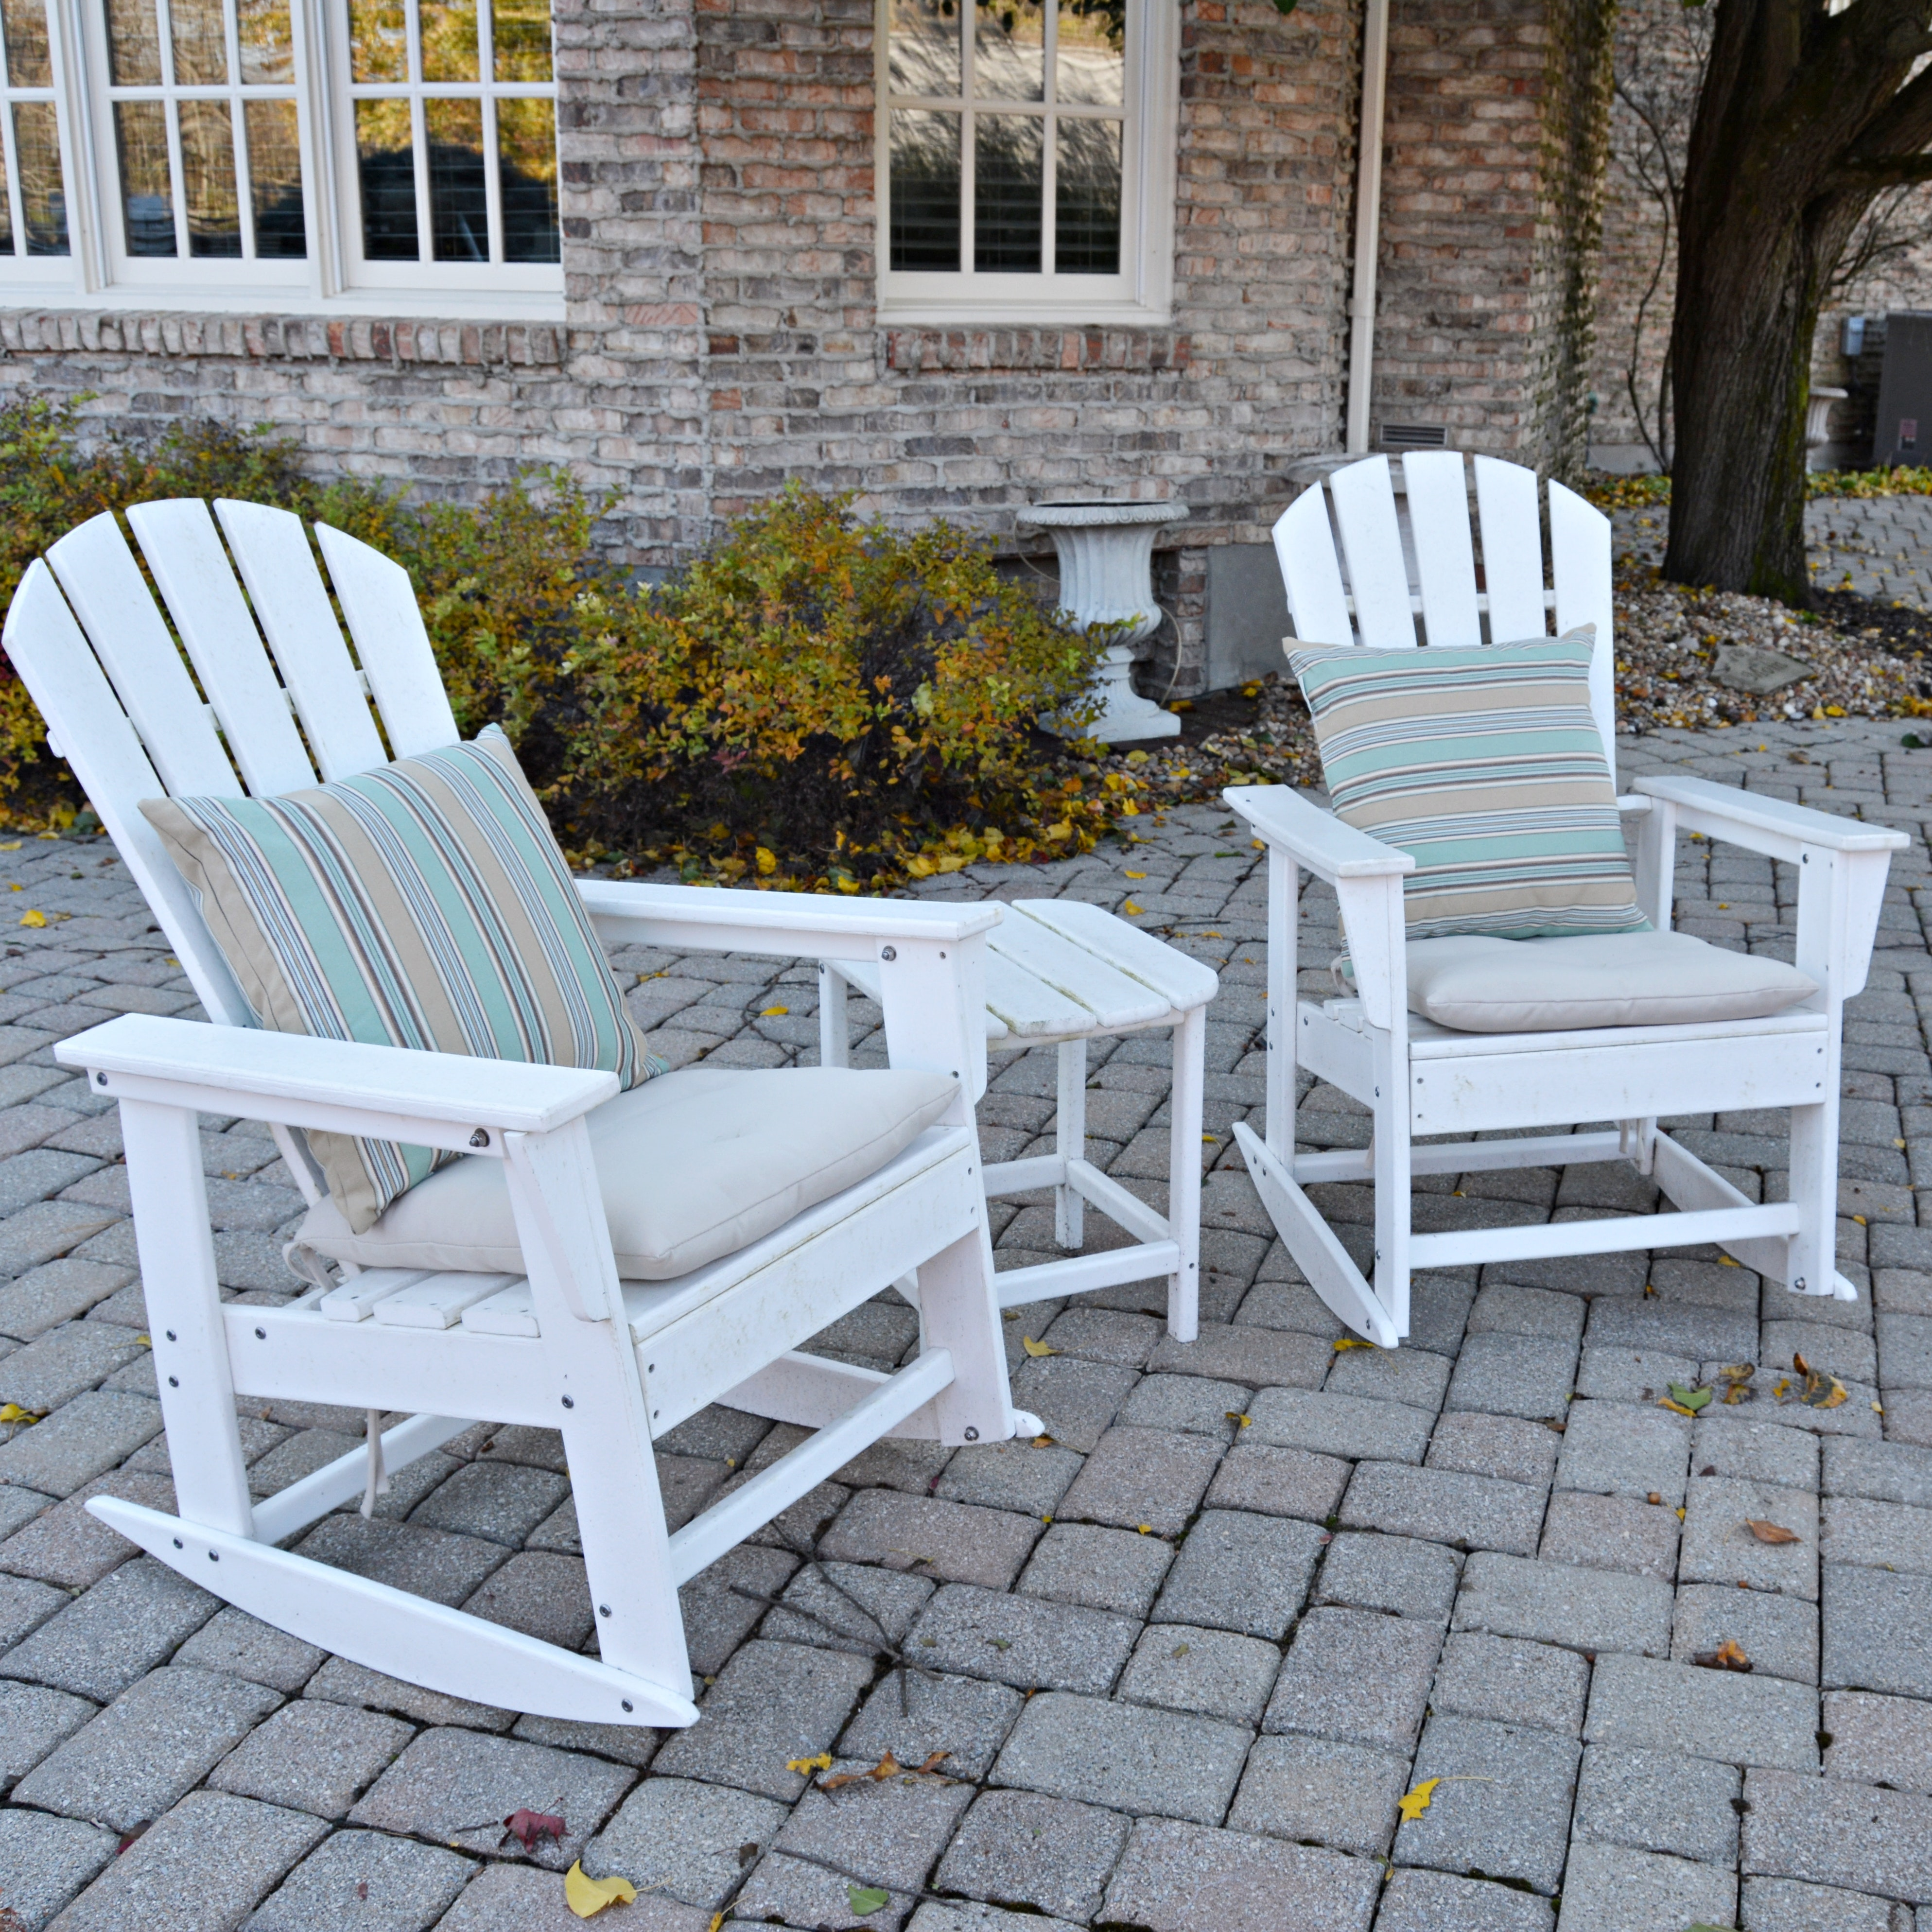 & White Patio Adirondack Rocking Chairs and Table by Polywood : EBTH